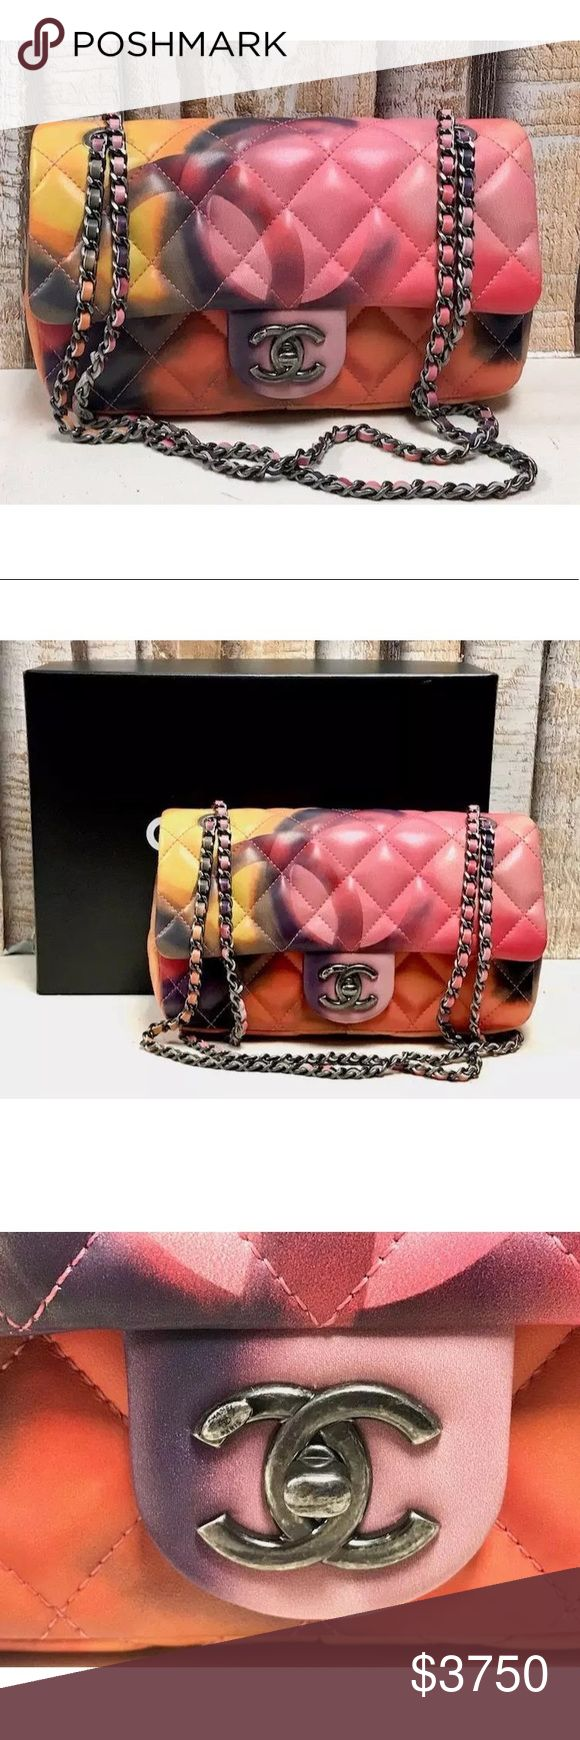 Authentic Chanel limited Edition flap bag Chanel limited edition gem that would complete any collection. Certificate of Authenticity included, Medium Flap Bag, Multicolor Lambskin  Strap Drop 12''- 21'', Measures 9''L, 2.5''W, 5''H with Authenticity Card, Info Booklet, Box, and Receipt This bag is in excellent condition! The exterior lambskin leather is in amazing shape There is a scratch on the bottom edge of the flap by the turnlock. Overall in excellent condition. PRE SALE on INSTAGRAM…